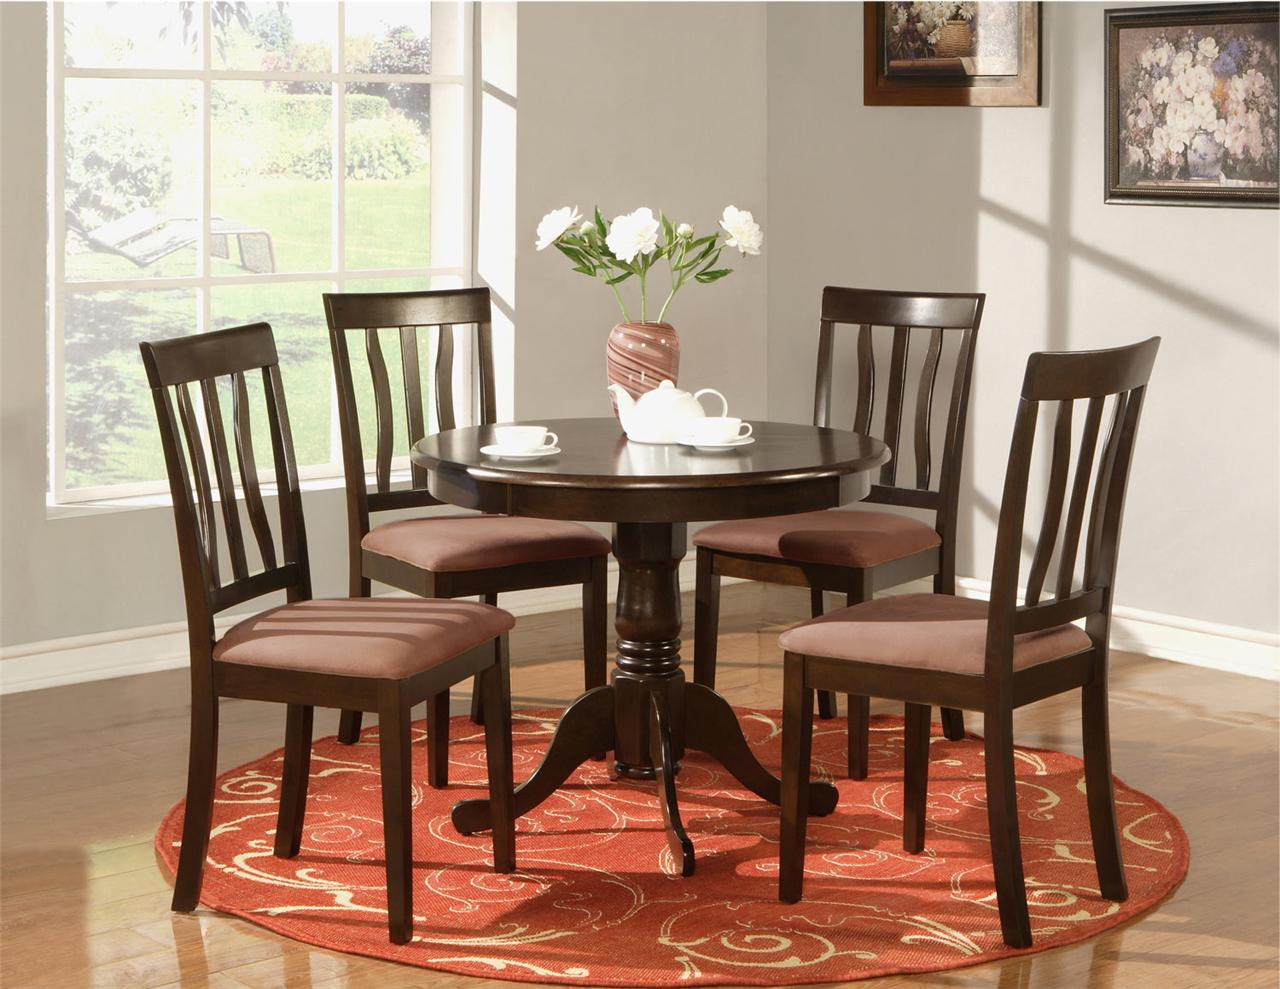 5 PC ROUND TABLE DINETTE KITCHEN TABLE AND 4 CHAIRS